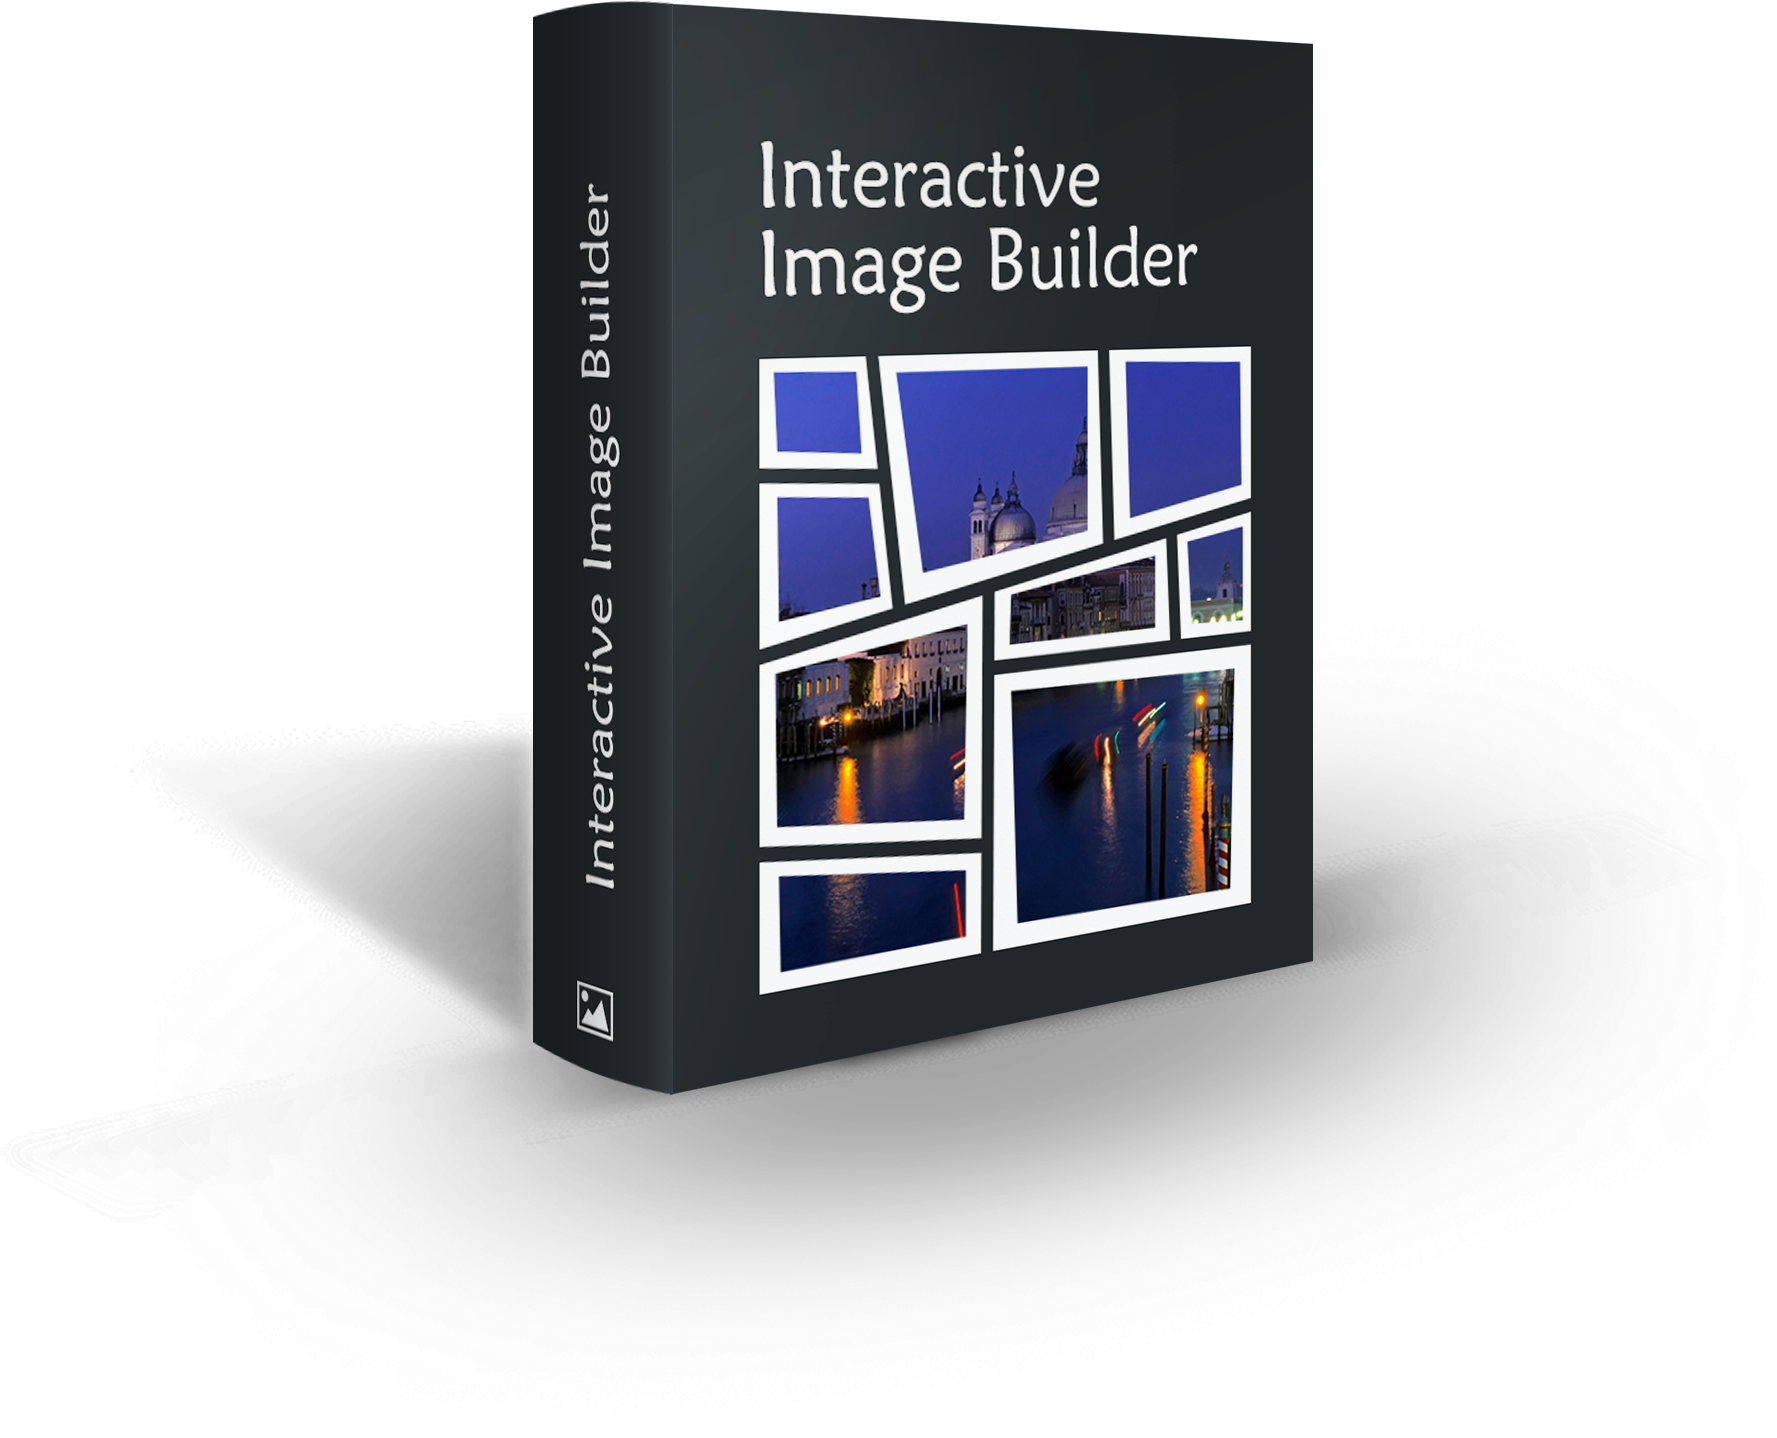 Interactive Image Builder